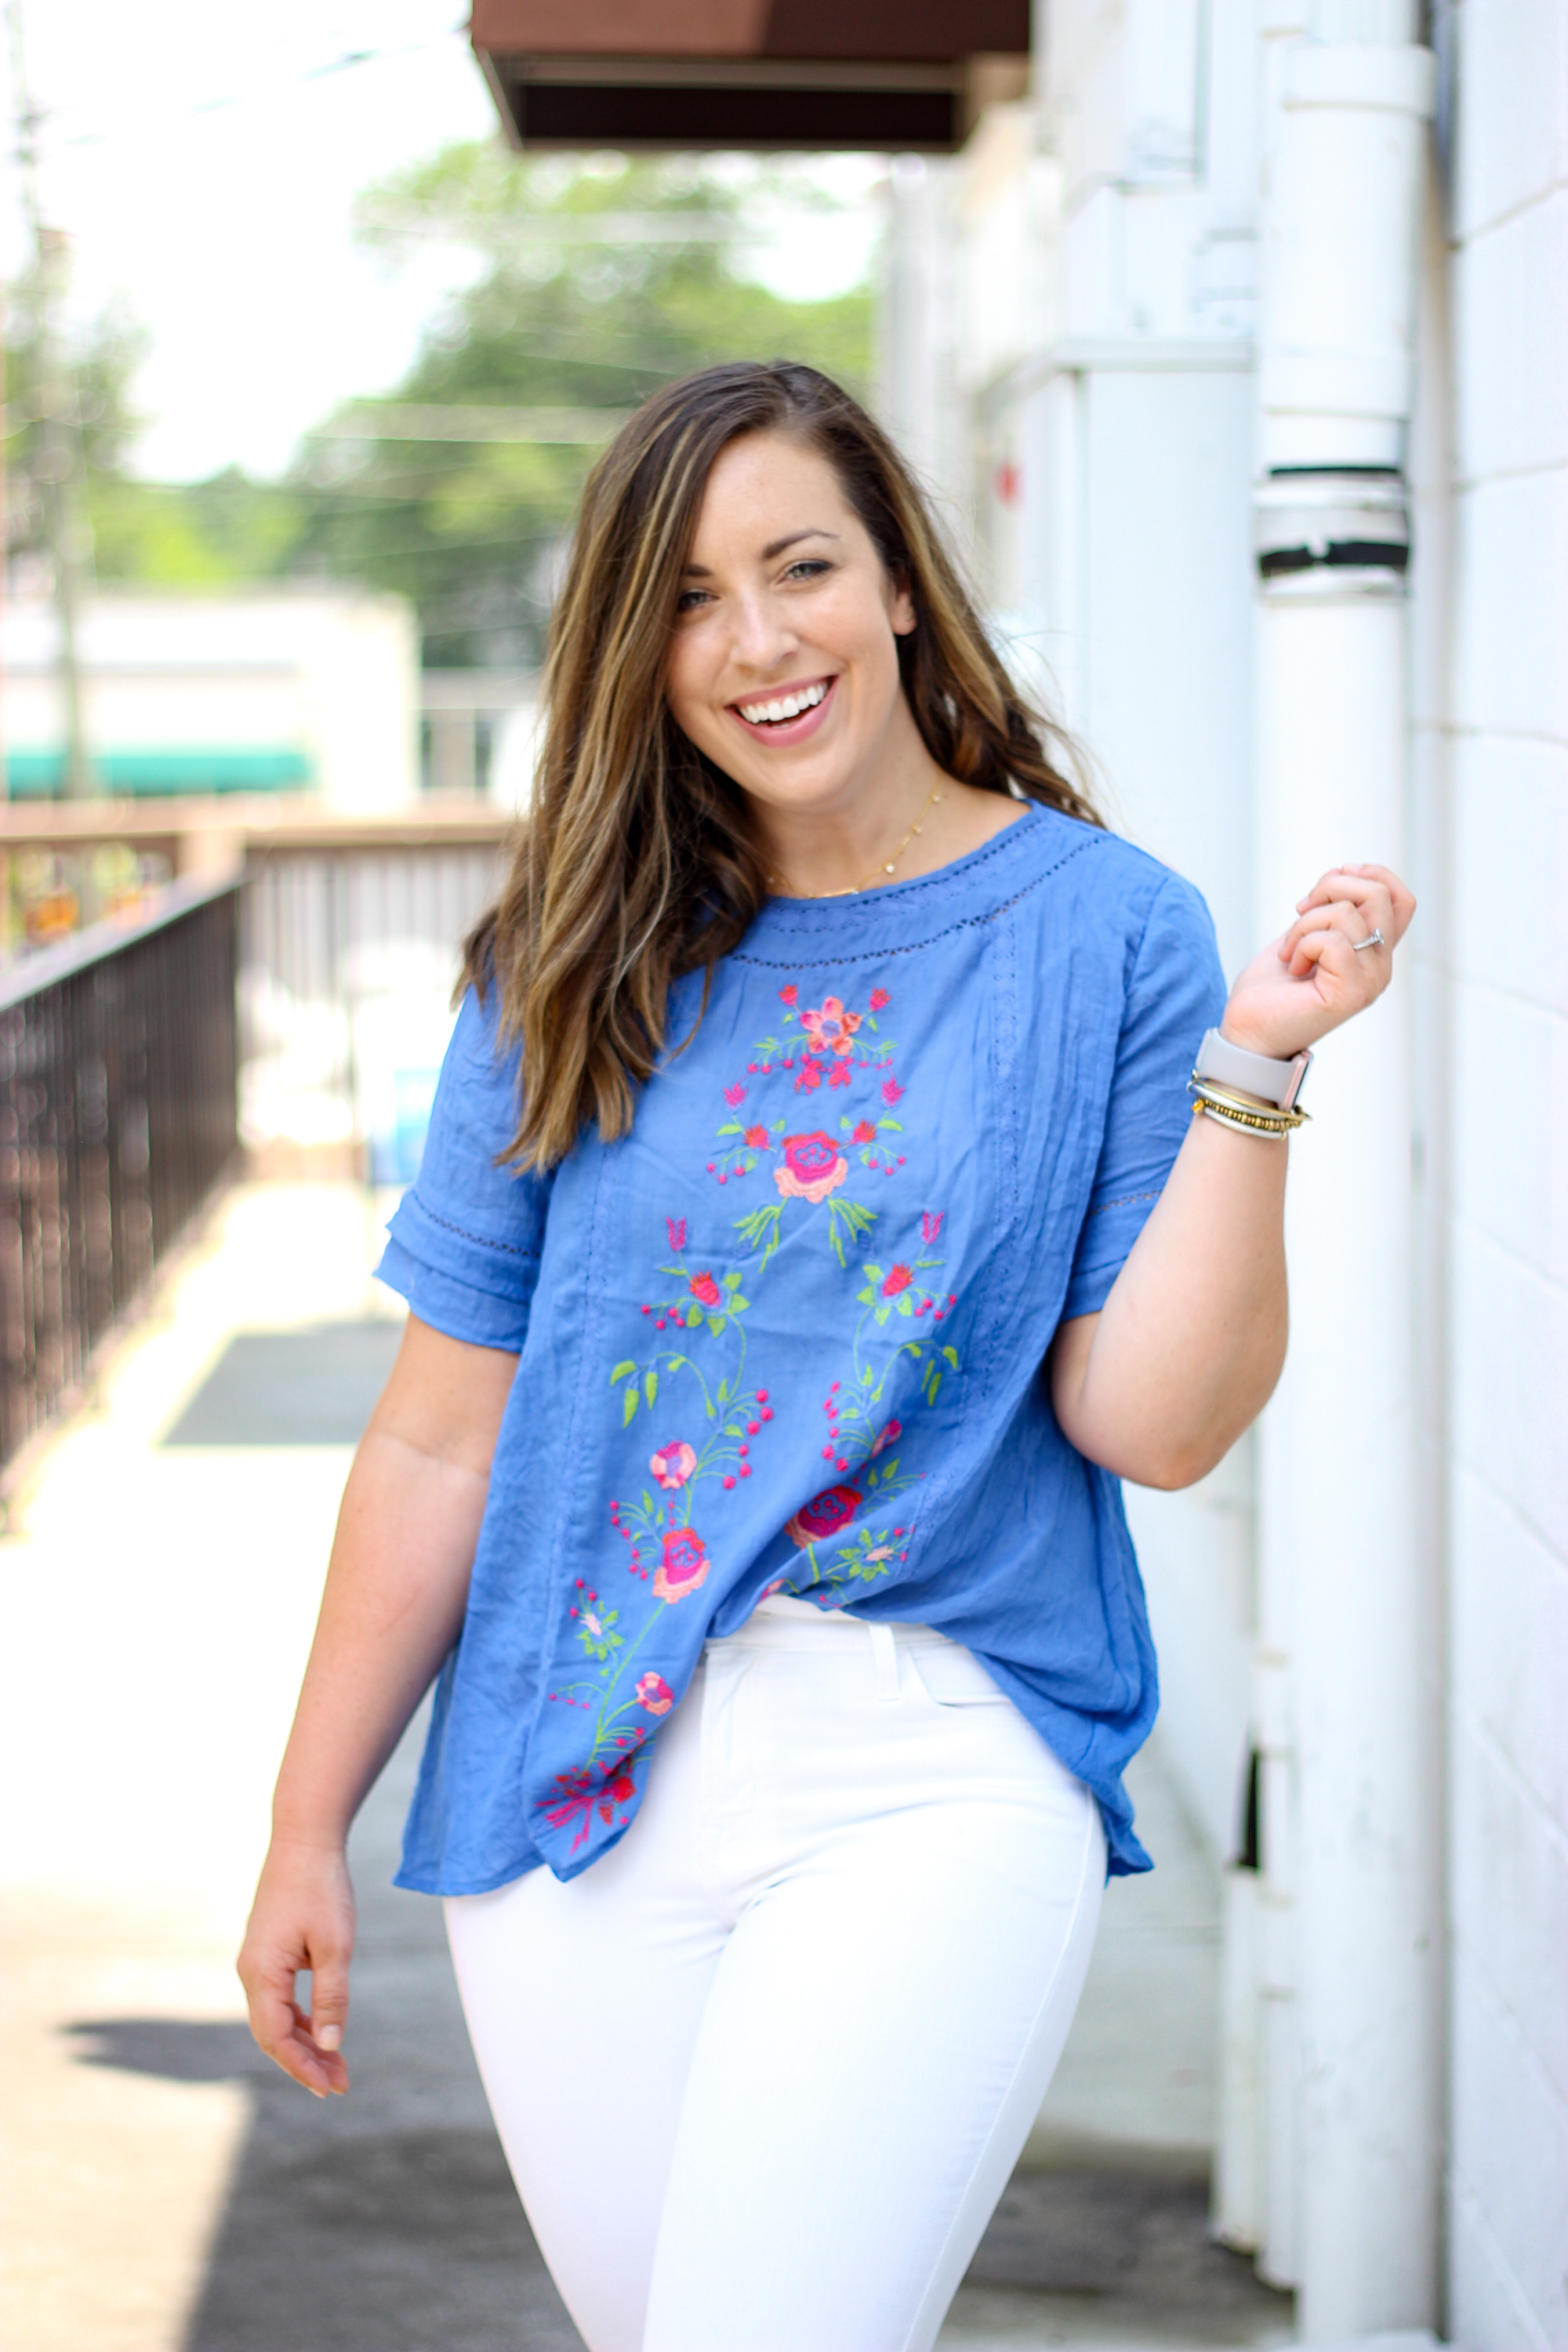 Embroidered Summer Top   Just Peachy Blog